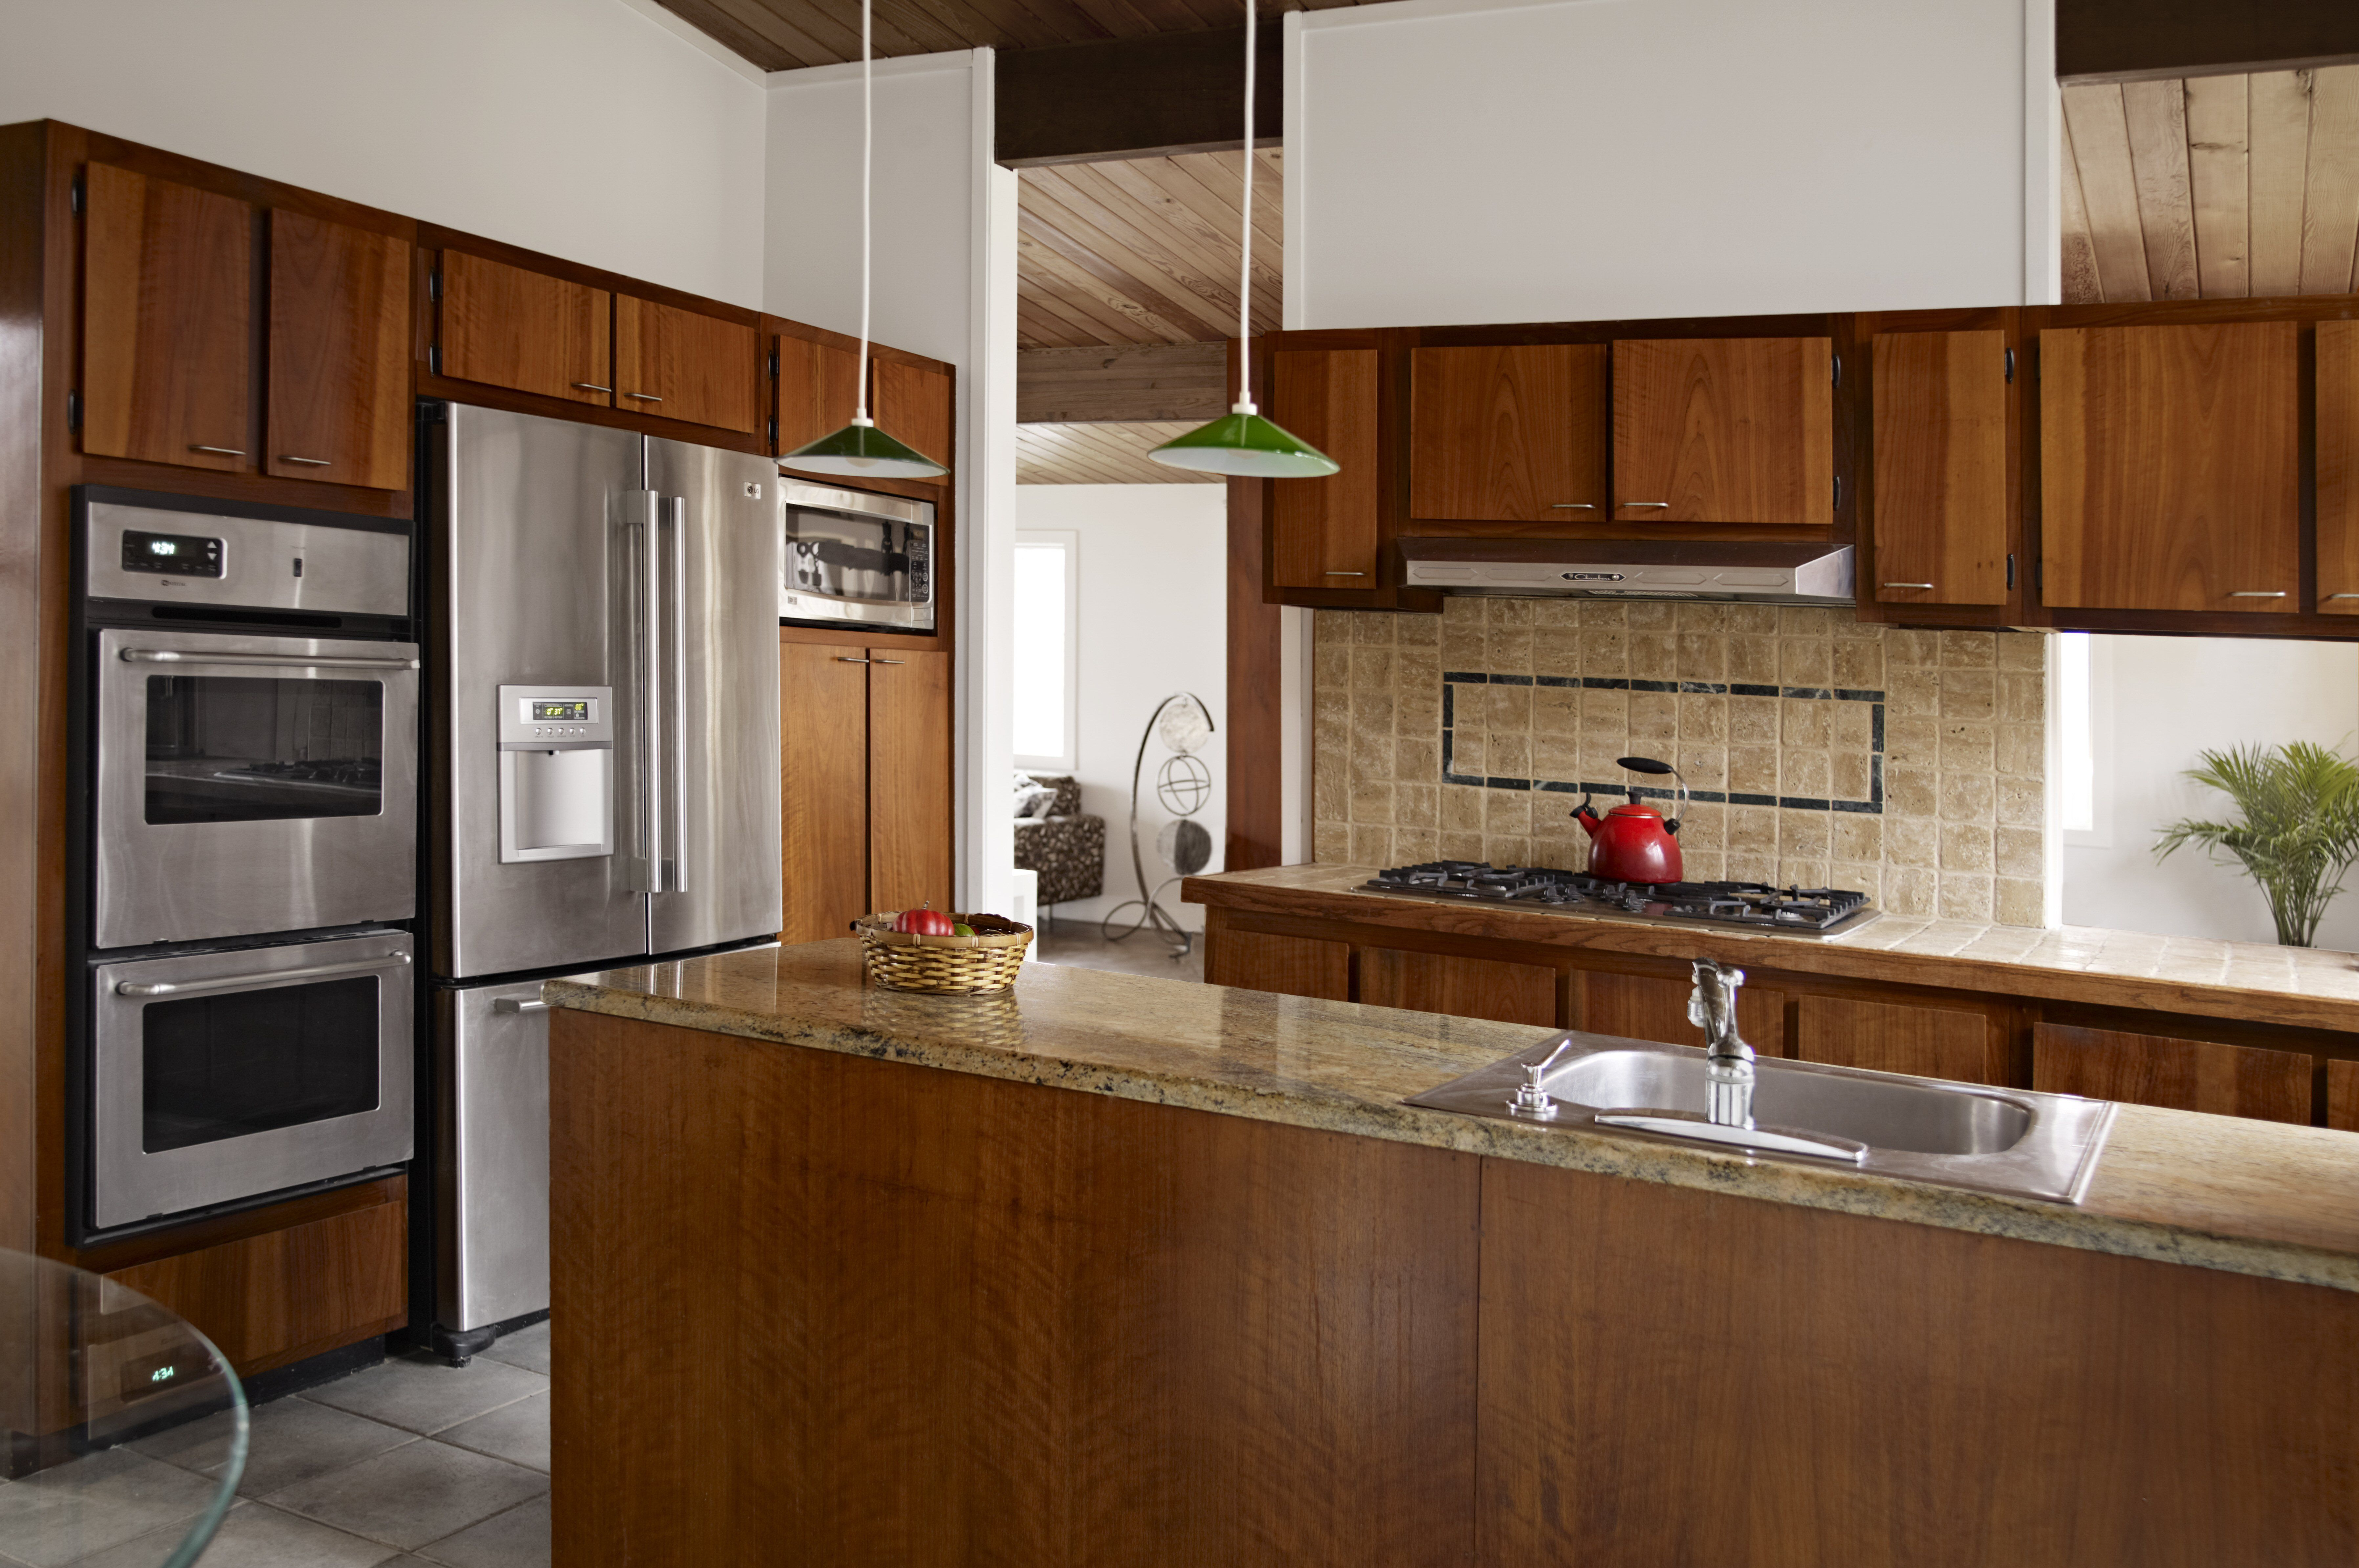 Feng shui kitchen with sink in island, range opposite wall, and refrigerator at the end.